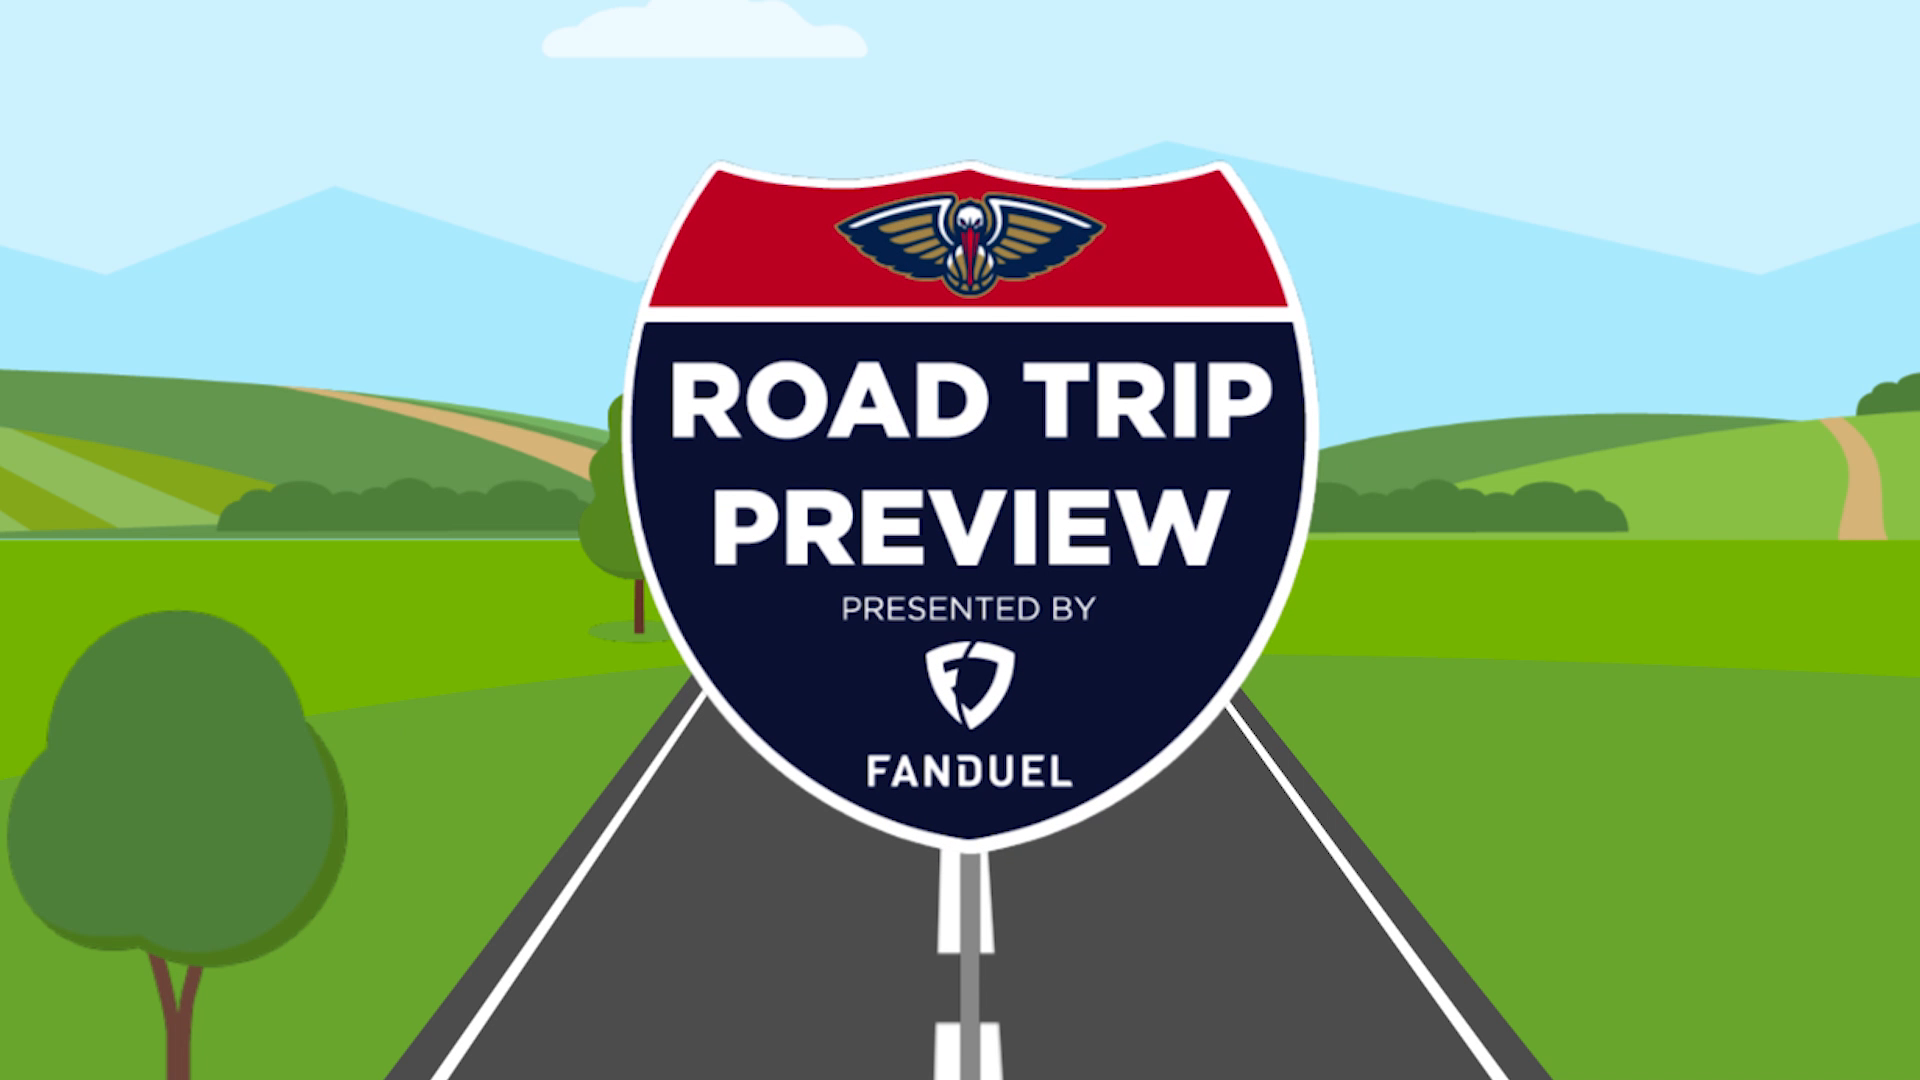 Pelicans Road Trip Preview presented by FanDuel | Charlotte